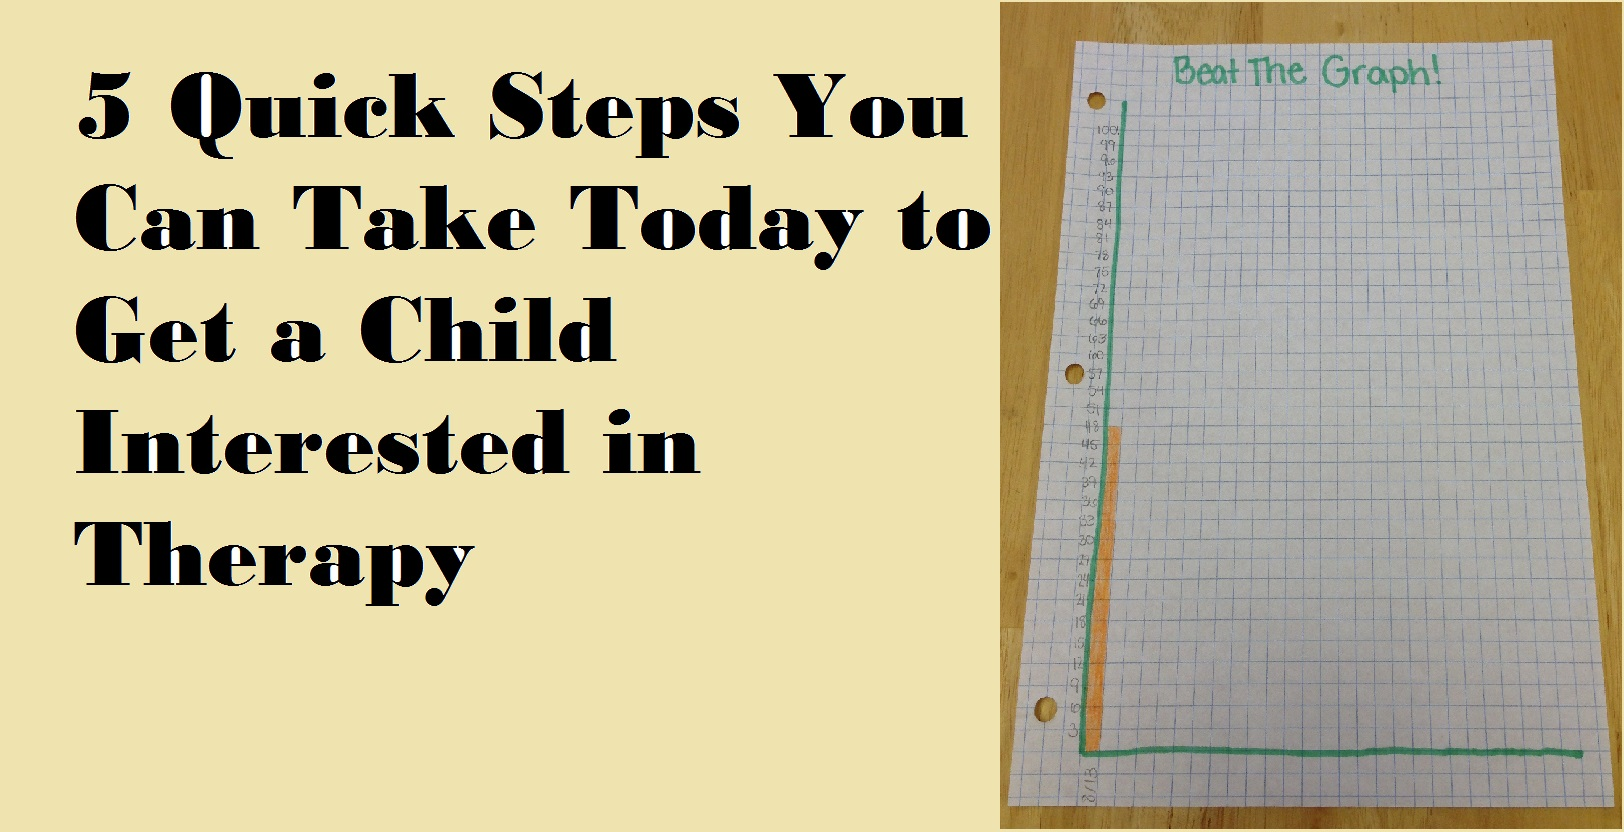 5 Quick Steps You Can Take Today to Get a Child Interested In Therapy